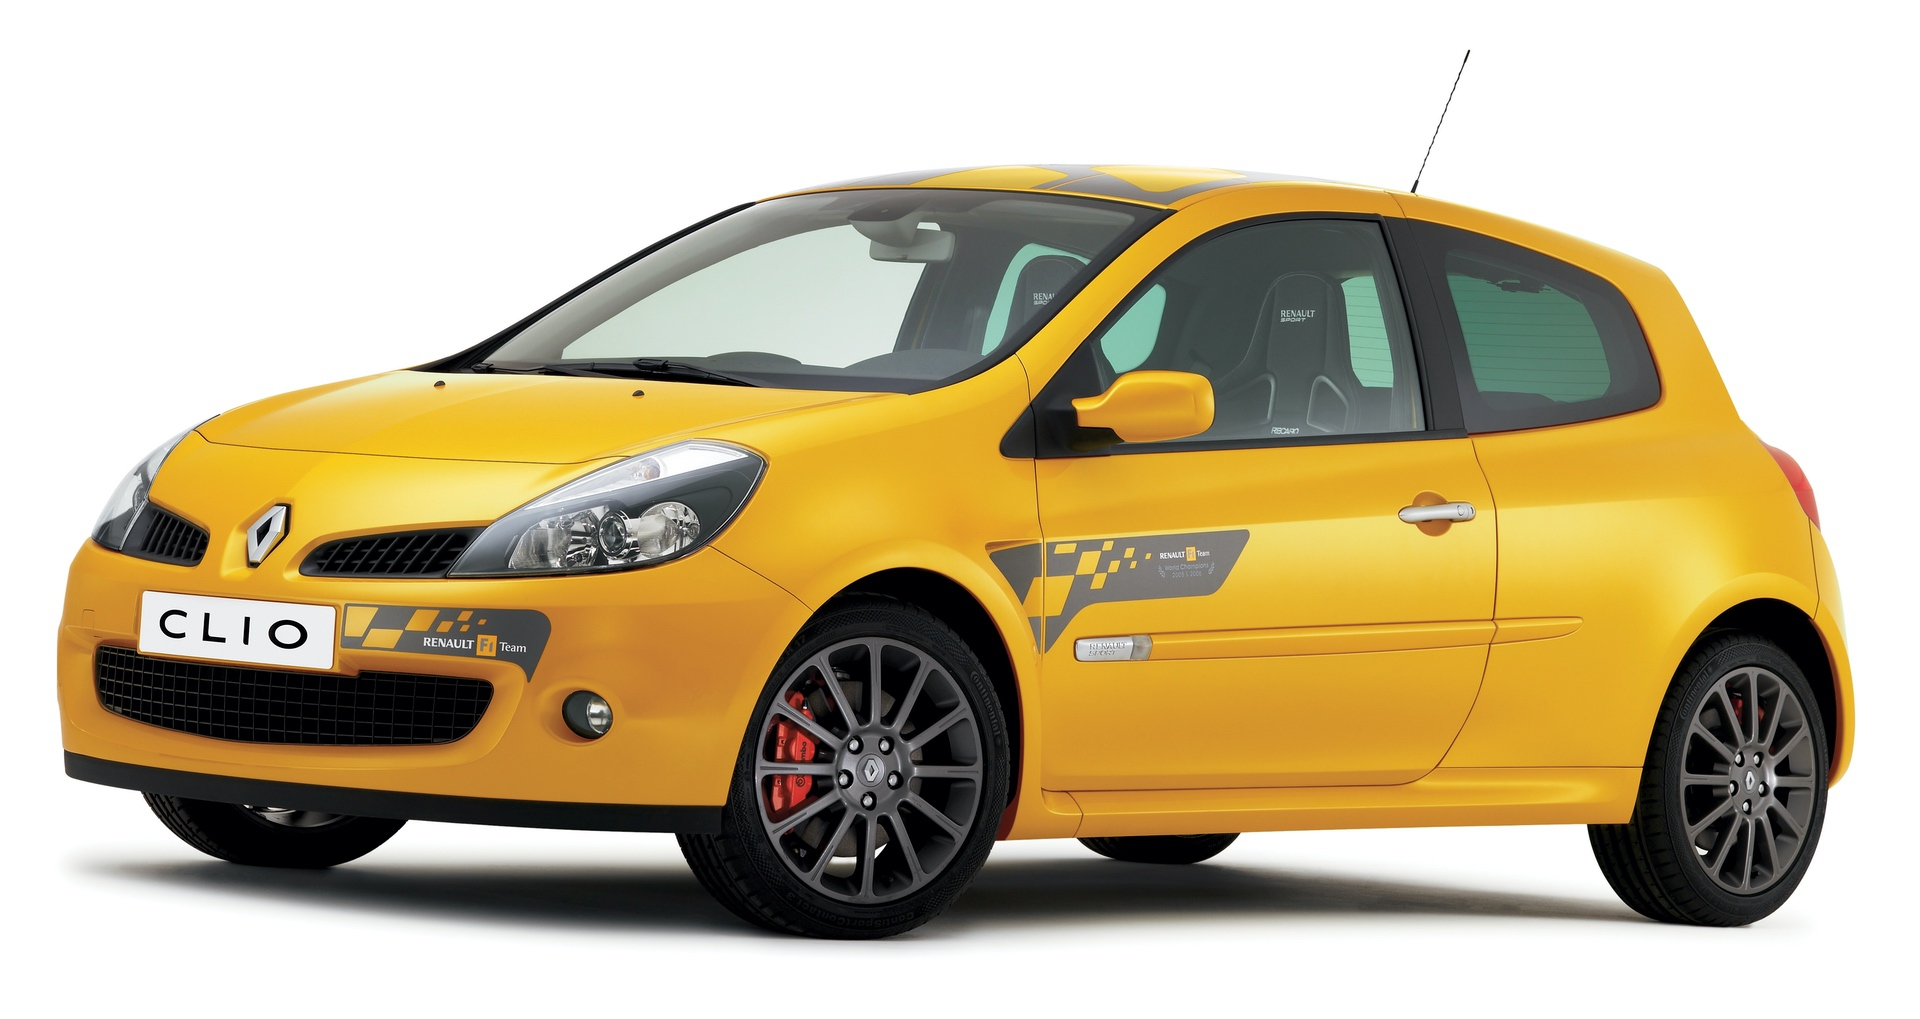 2020-30-years-of-Renault-CLIO-Renault-CLIO-III-2005-2012-14